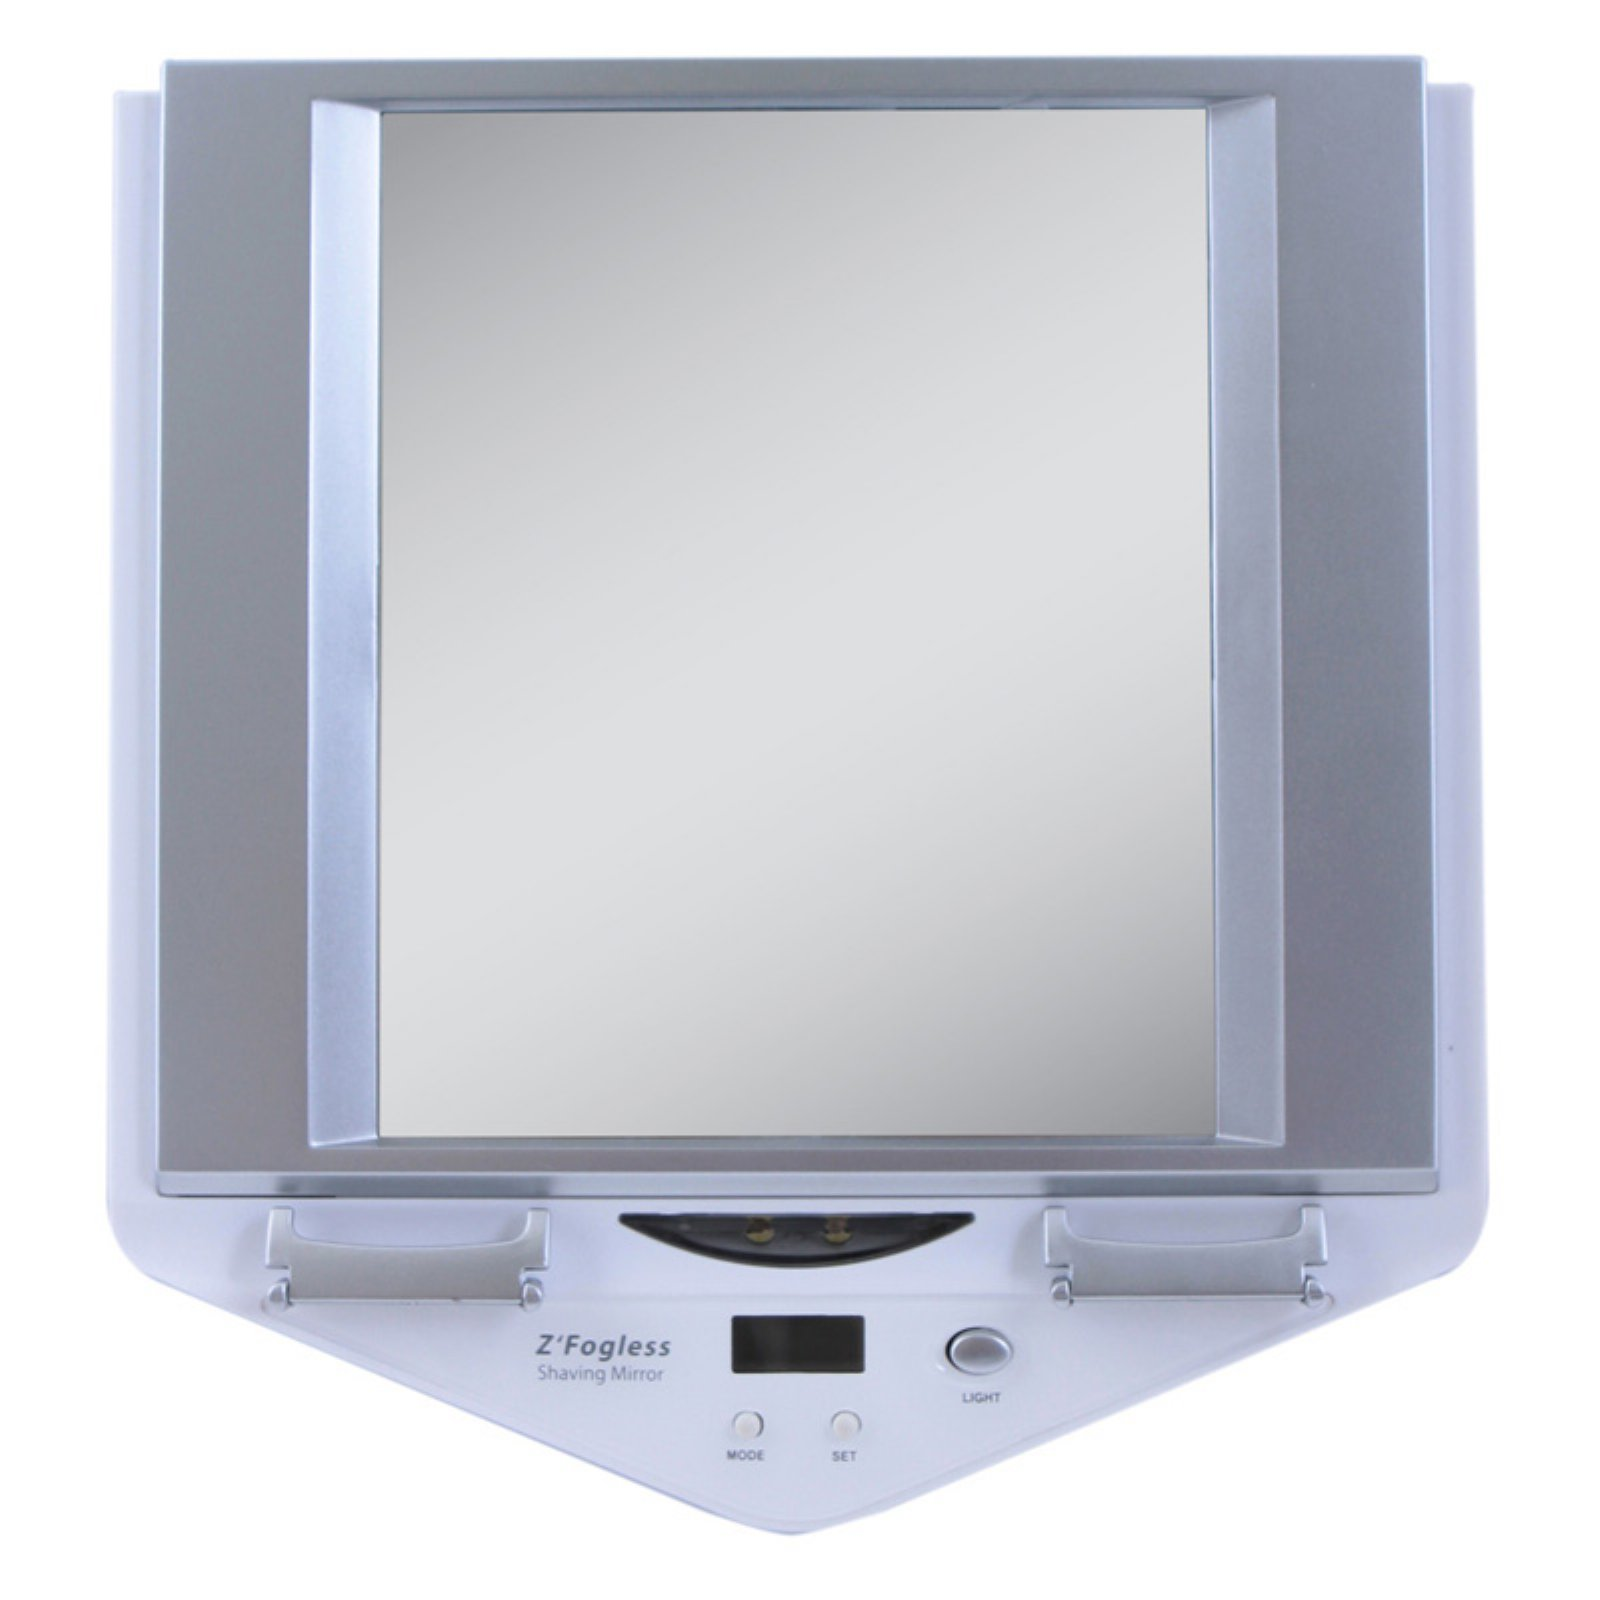 Zadro Z'Fogless Fog-Free LED Lighted Shower Mirror with LCD Clock - White